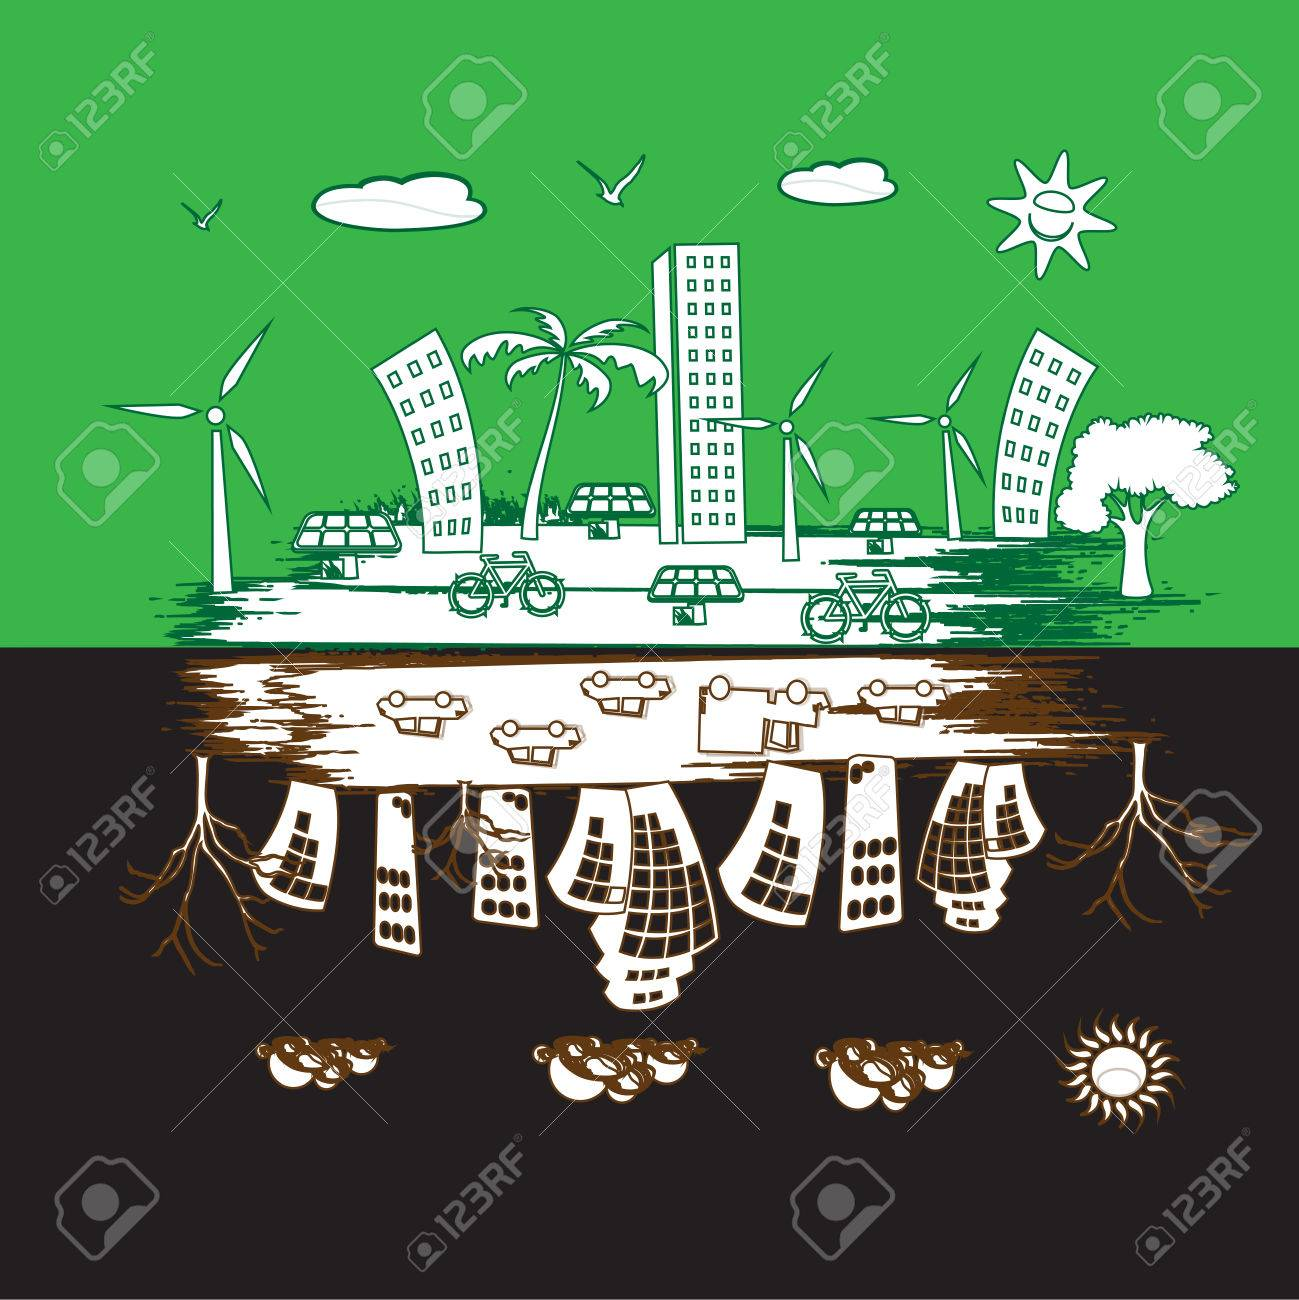 green city and pollution city Stock Photo - 24464444